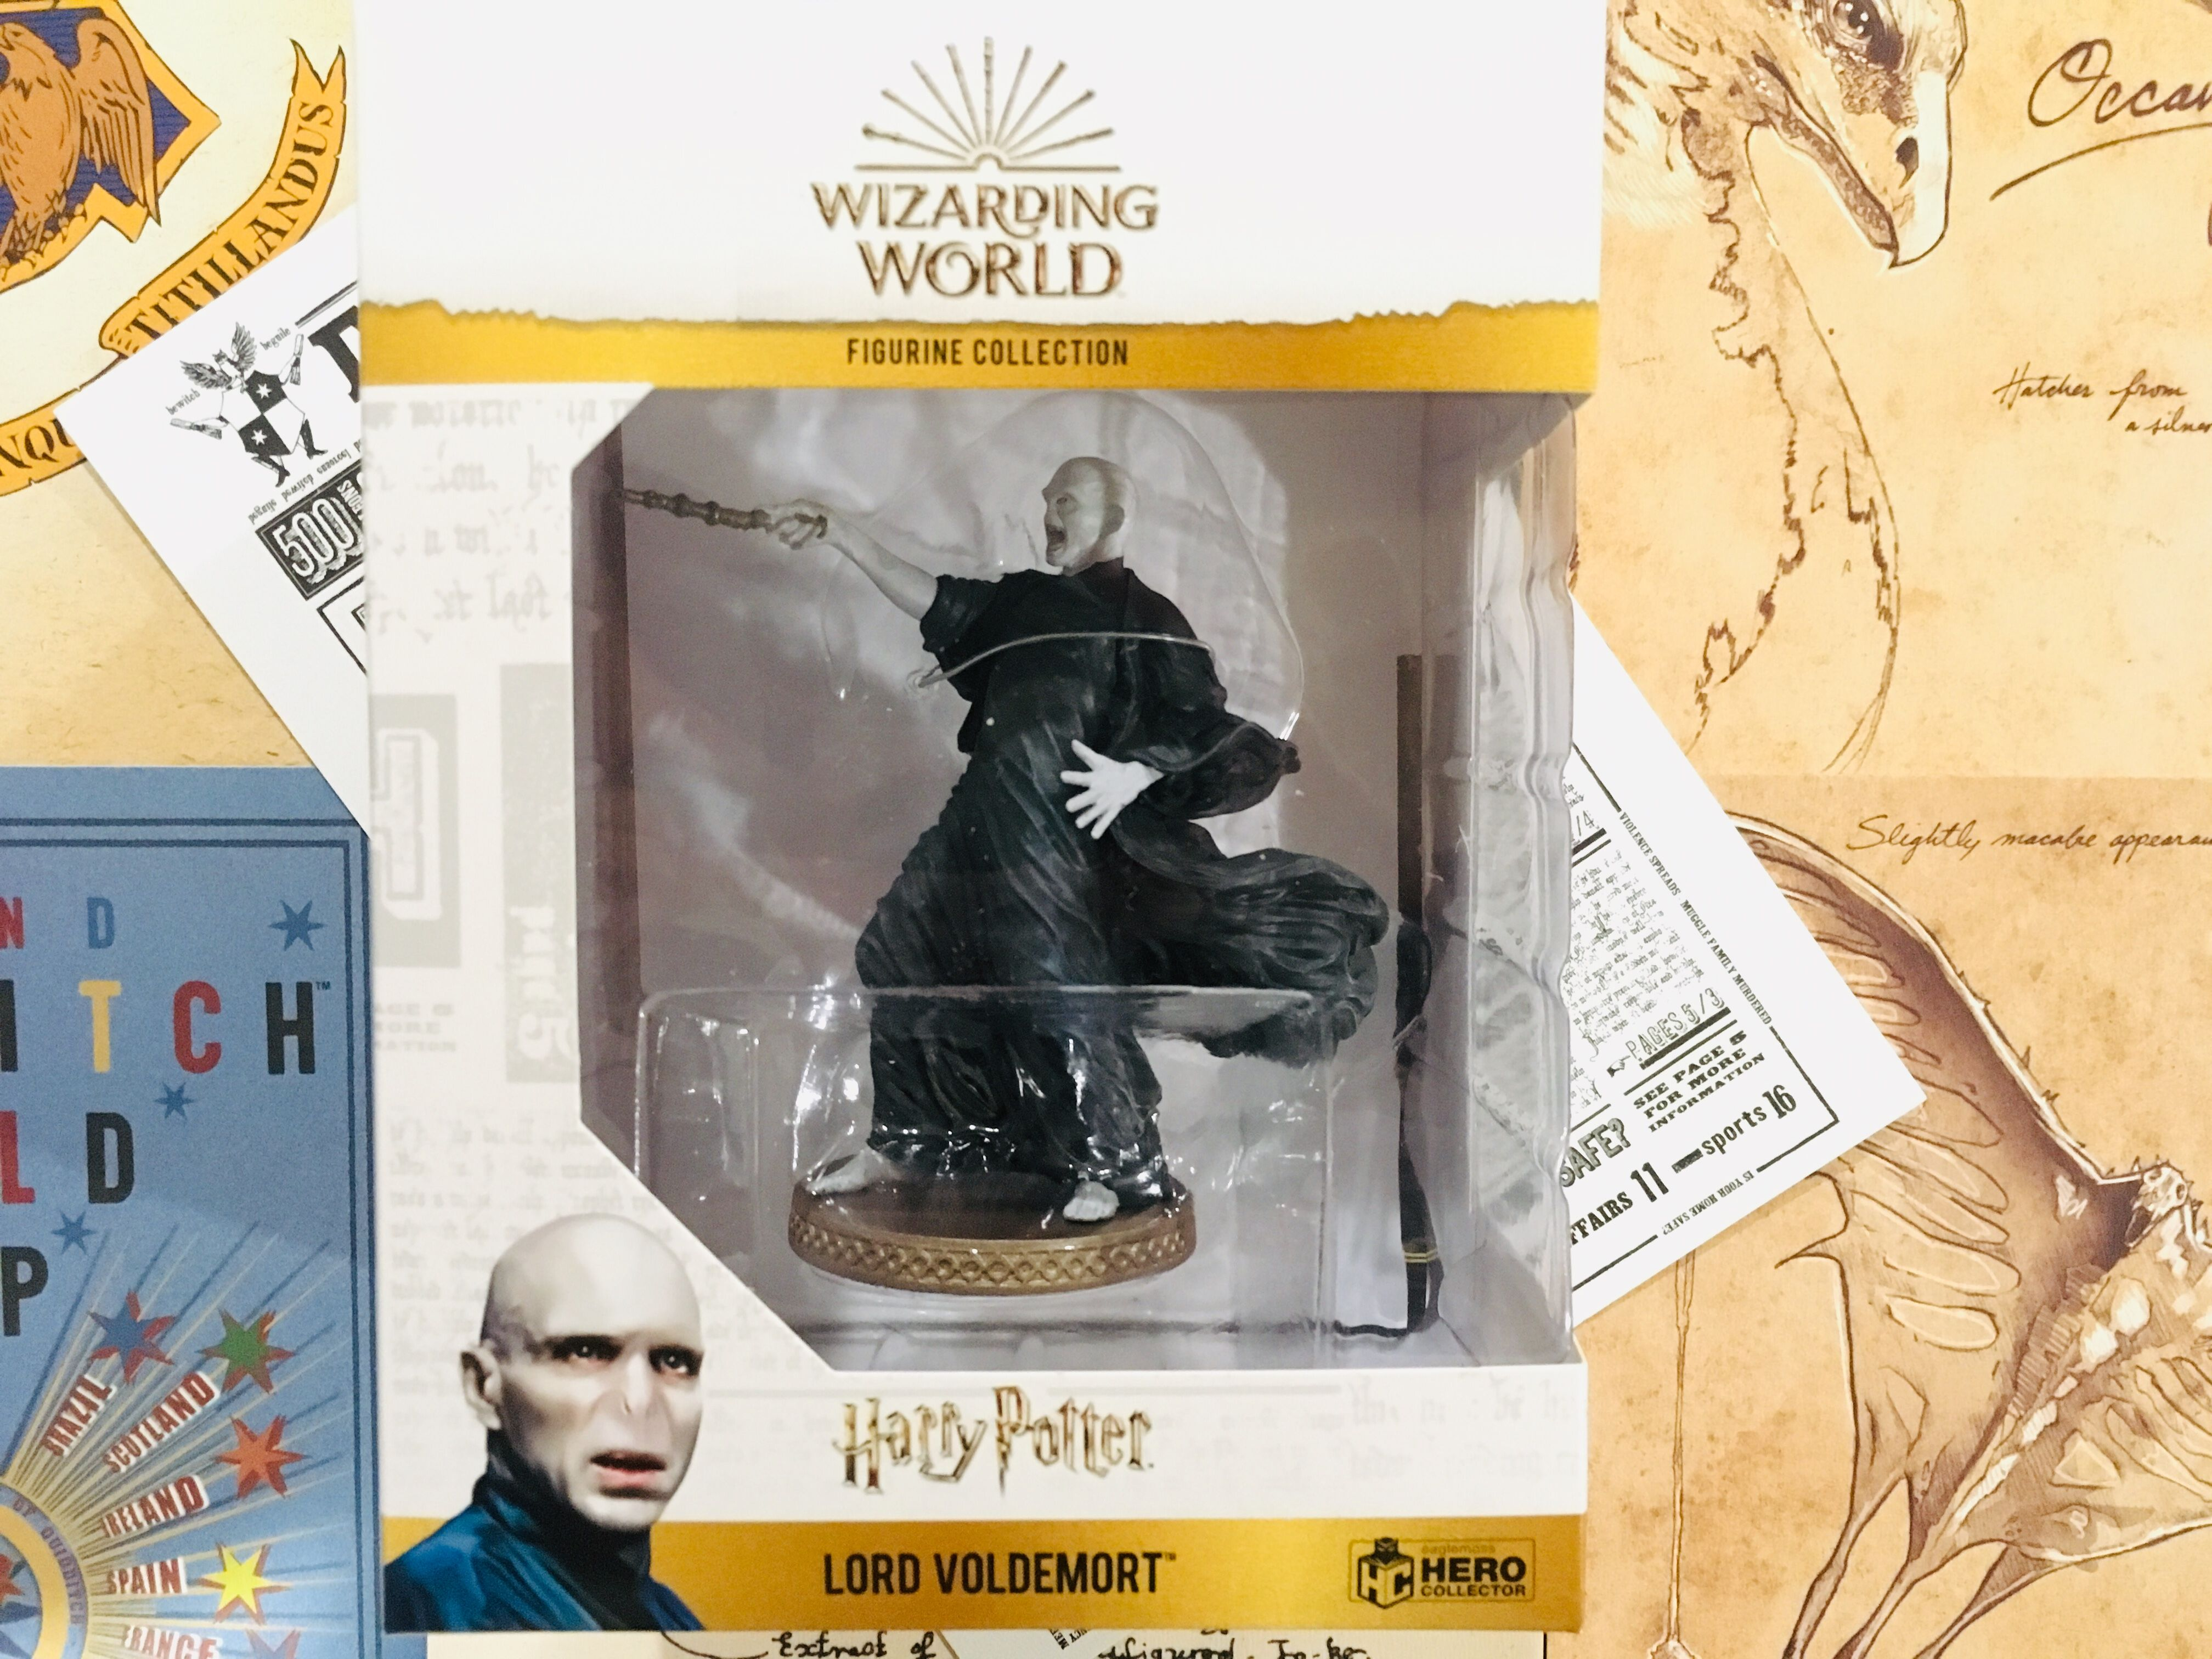 Voldemort is carefully packaged in a collectible box to ensure safety during delivery as well as for maximum display capabilities.